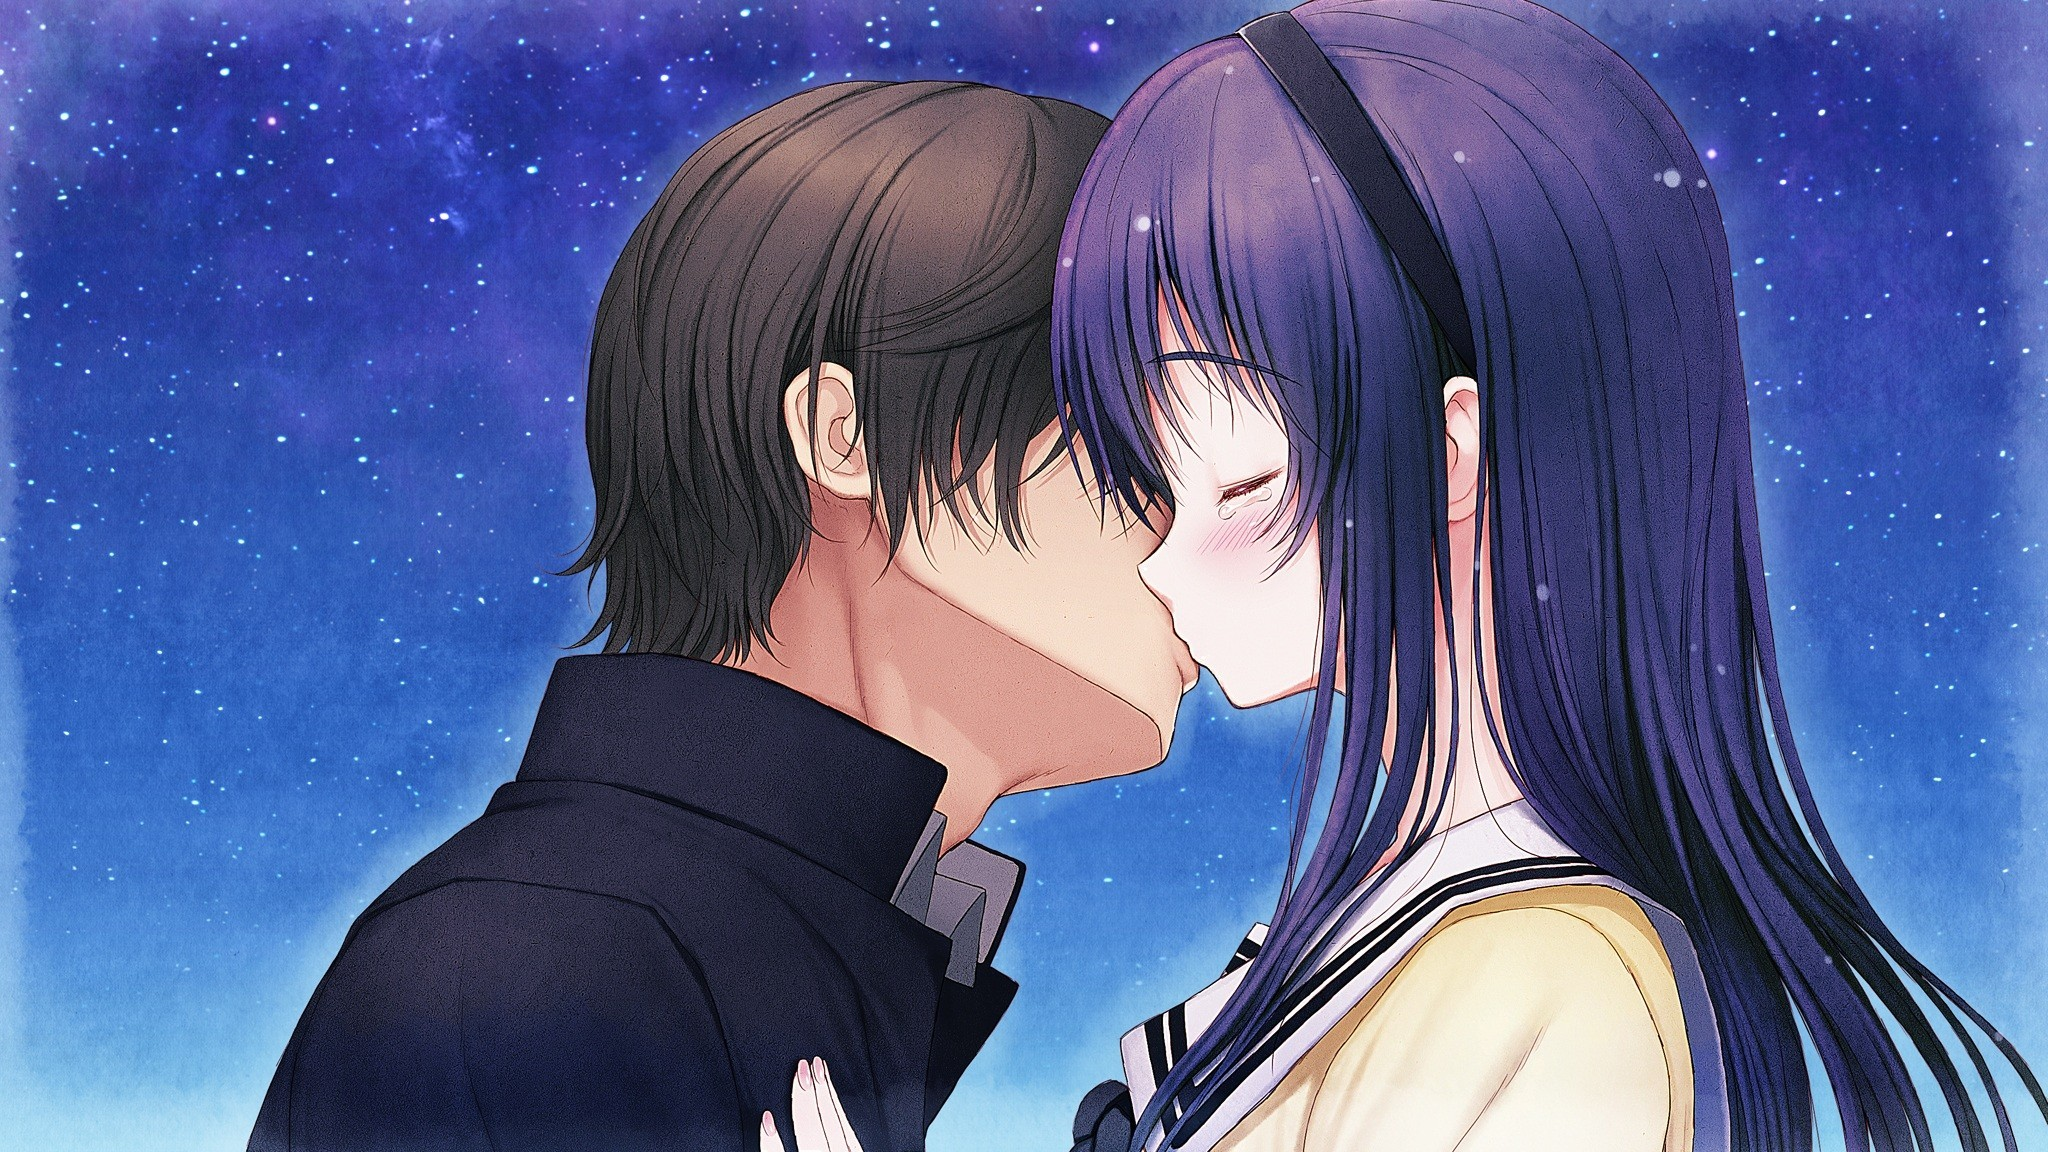 Animated Love Kiss Wallpaper : Kimi to Kanojo to Kanojo no Koi mood f wallpaper 2048x1152 132411 WallpaperUP